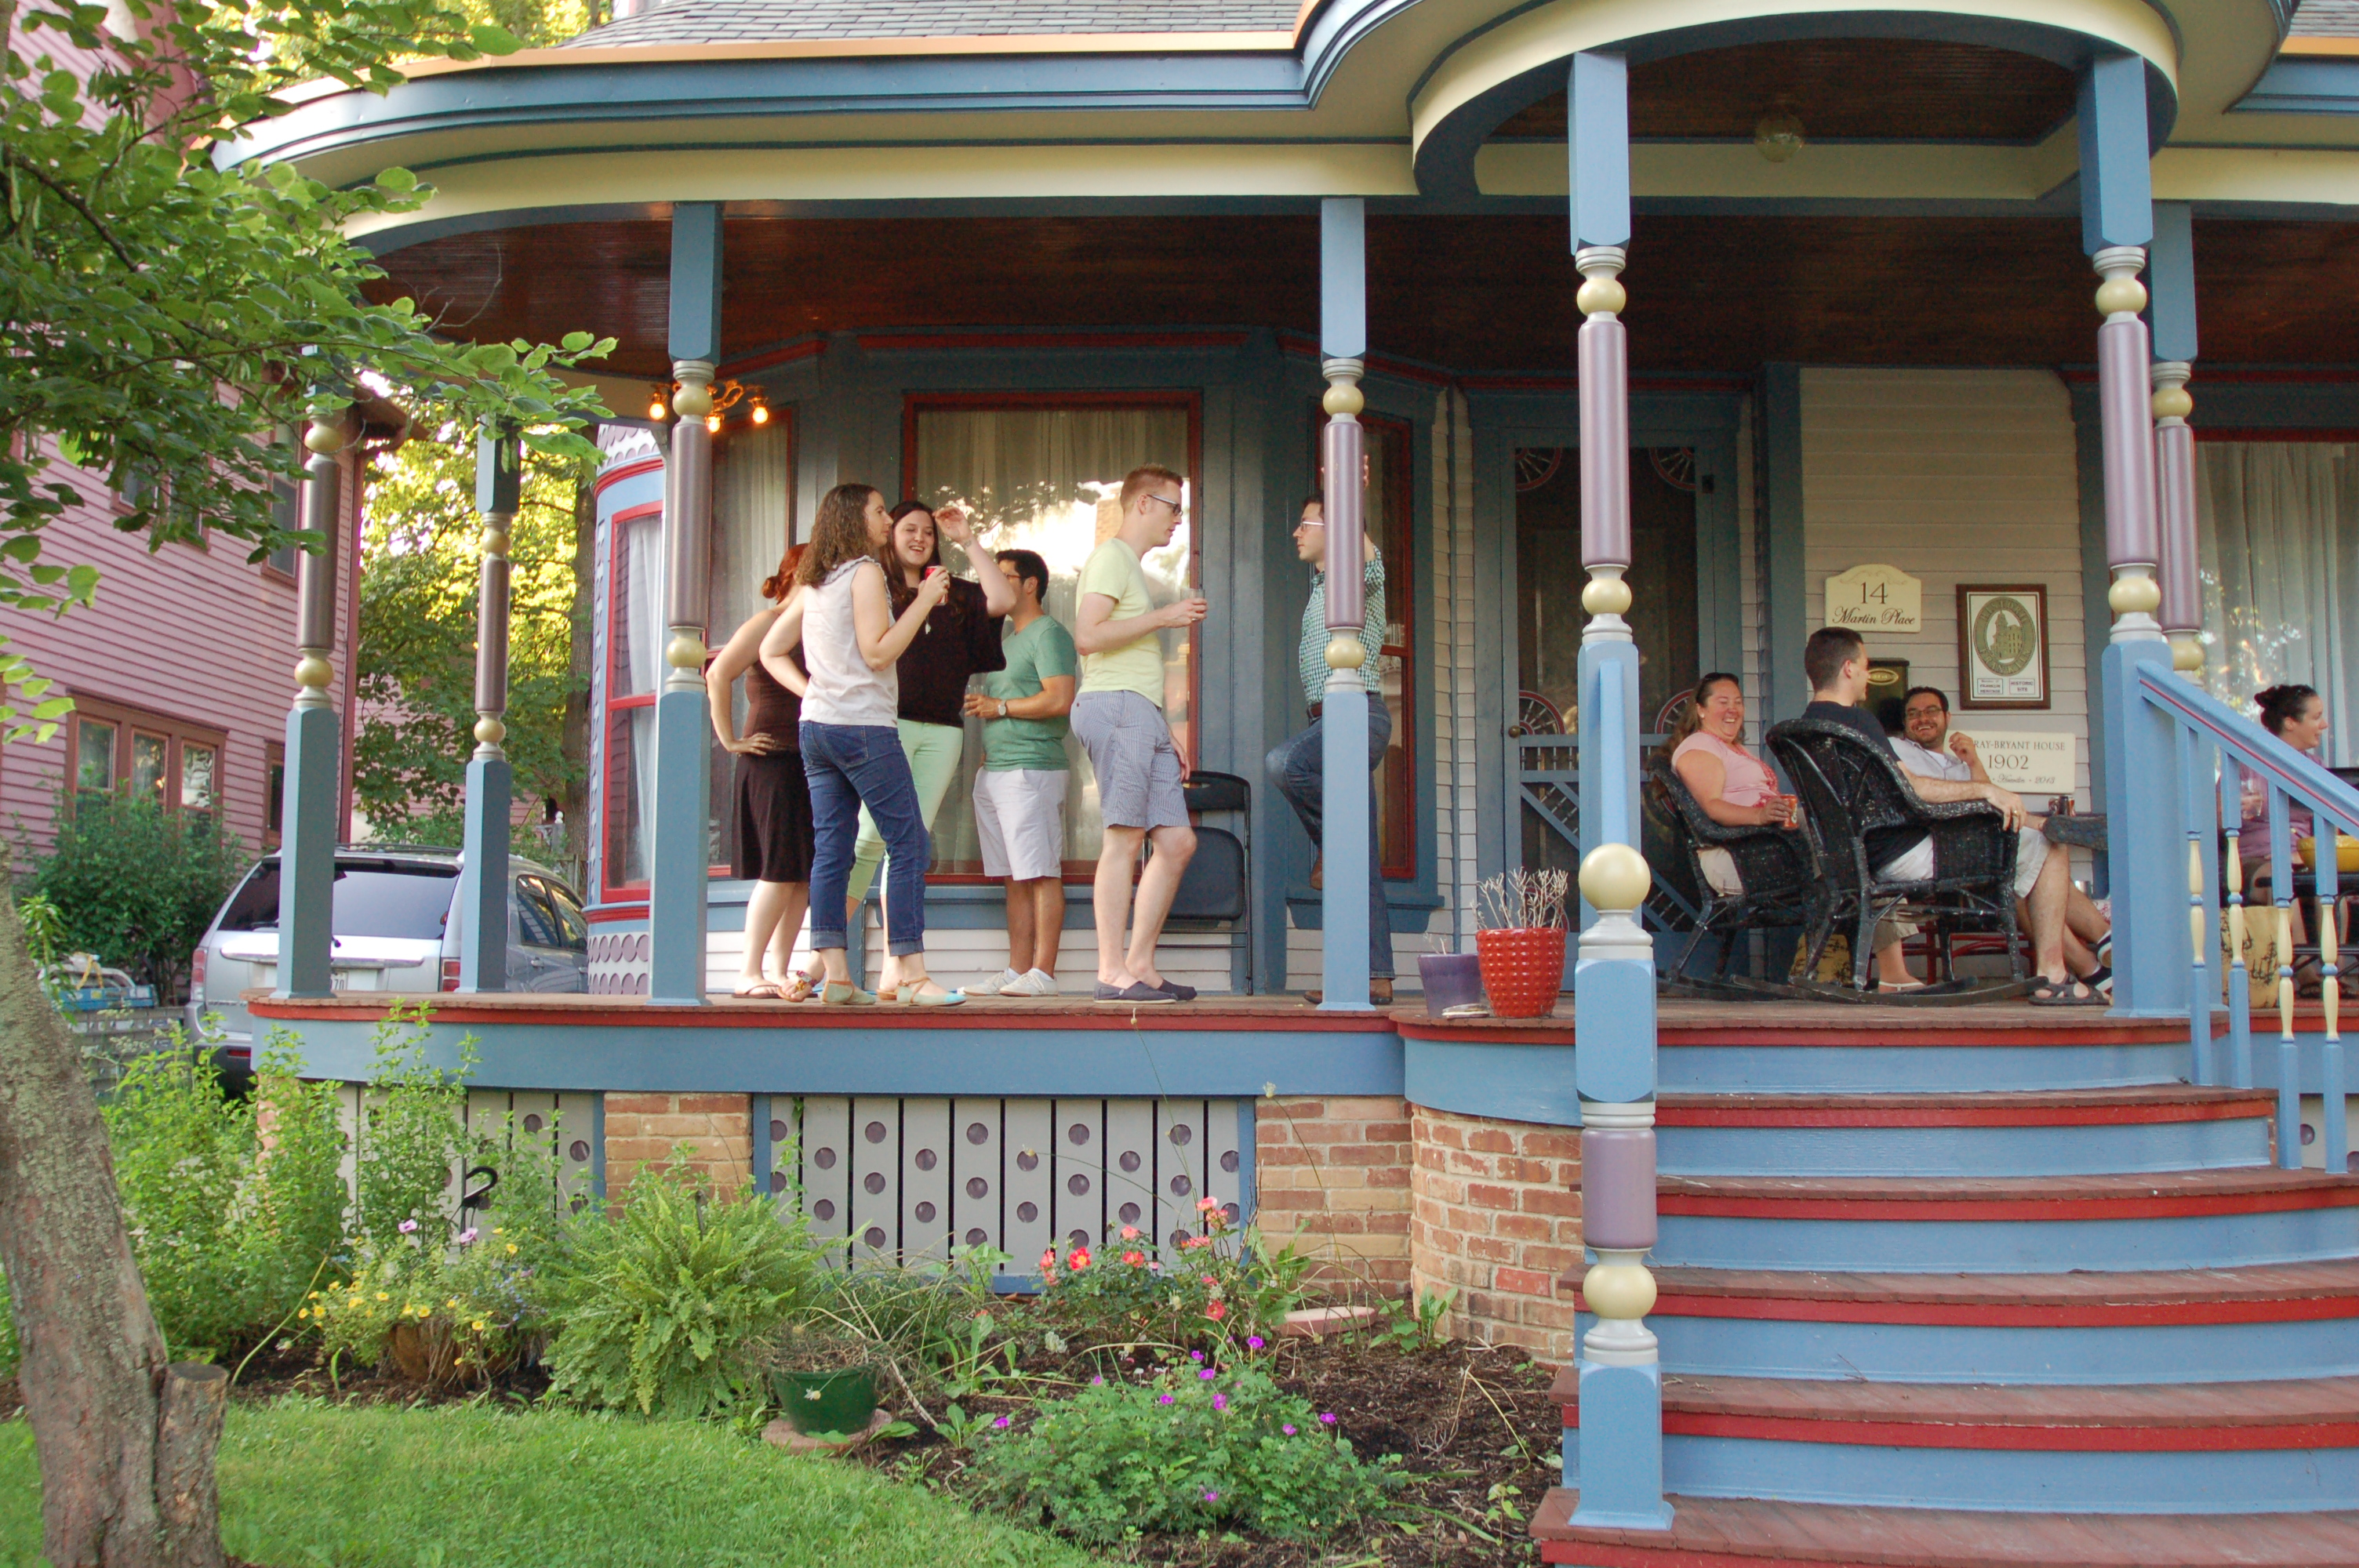 Porch Party An Atypical Post Vivacious Victorian